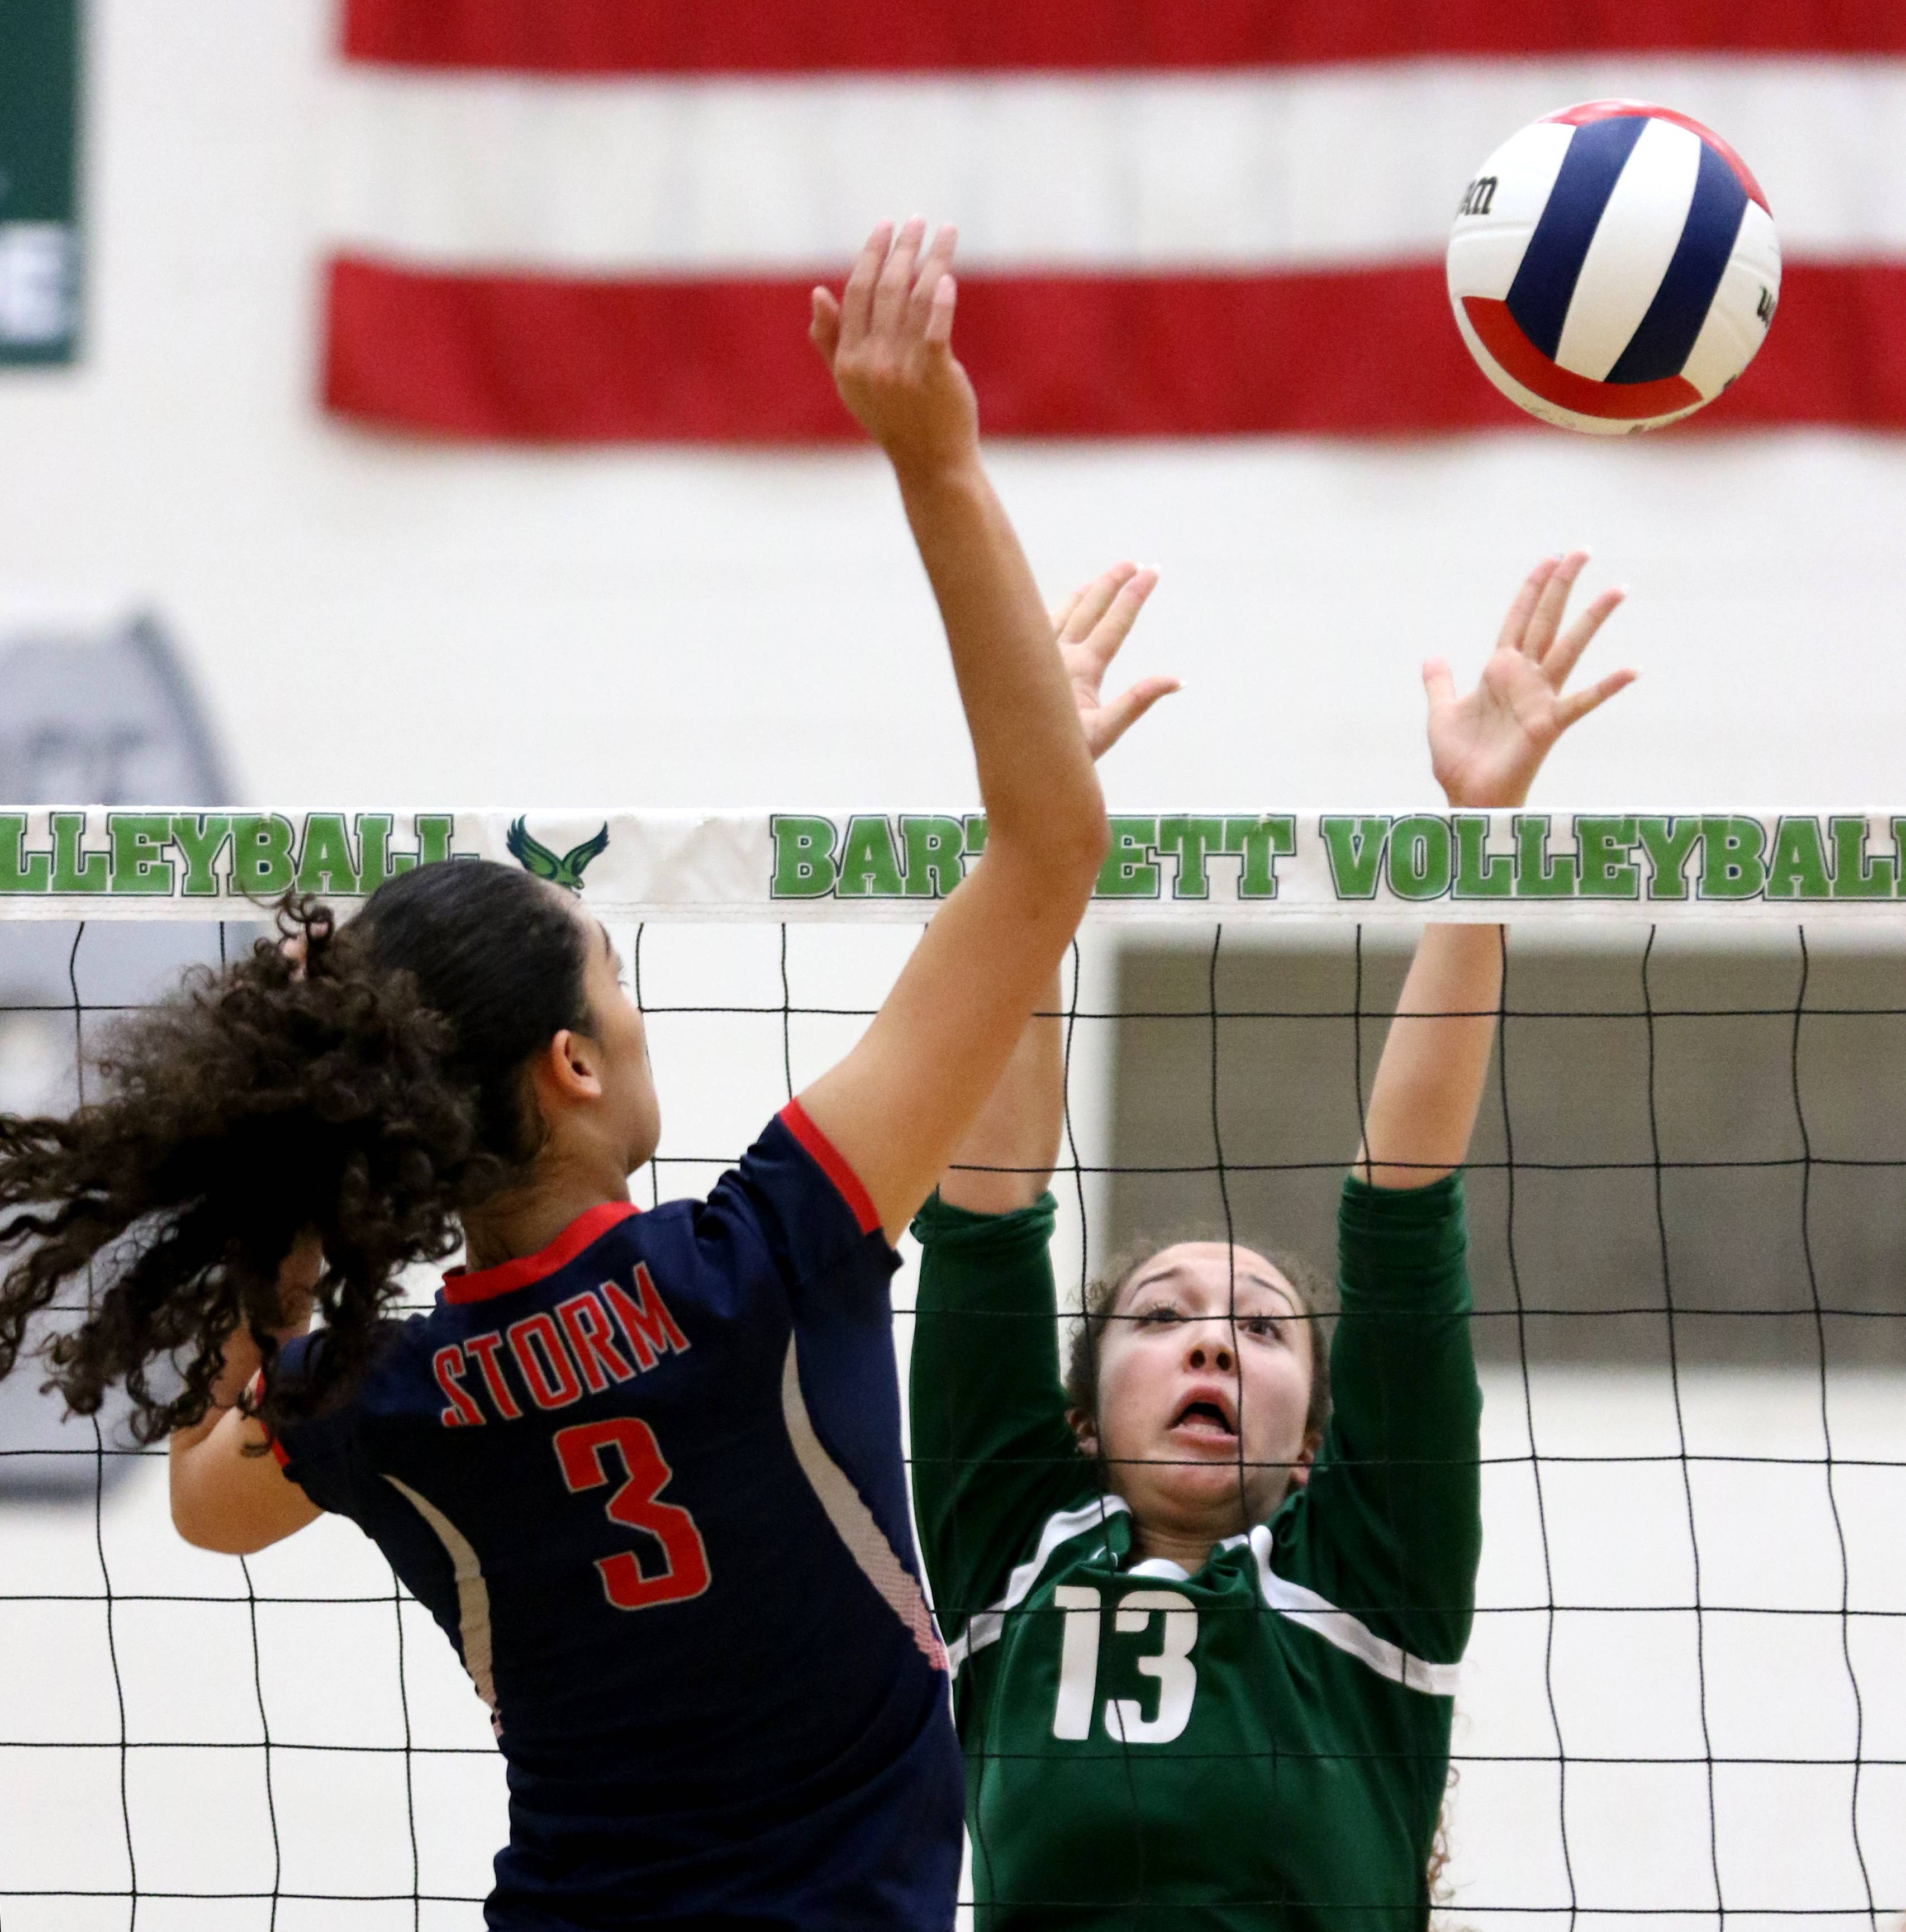 South Elgin's Angelina Negron, left, hits the ball as Bartlett's Isabella Diaz blocks during varsity girls volleyball at Bartlett on Wednesday evening.